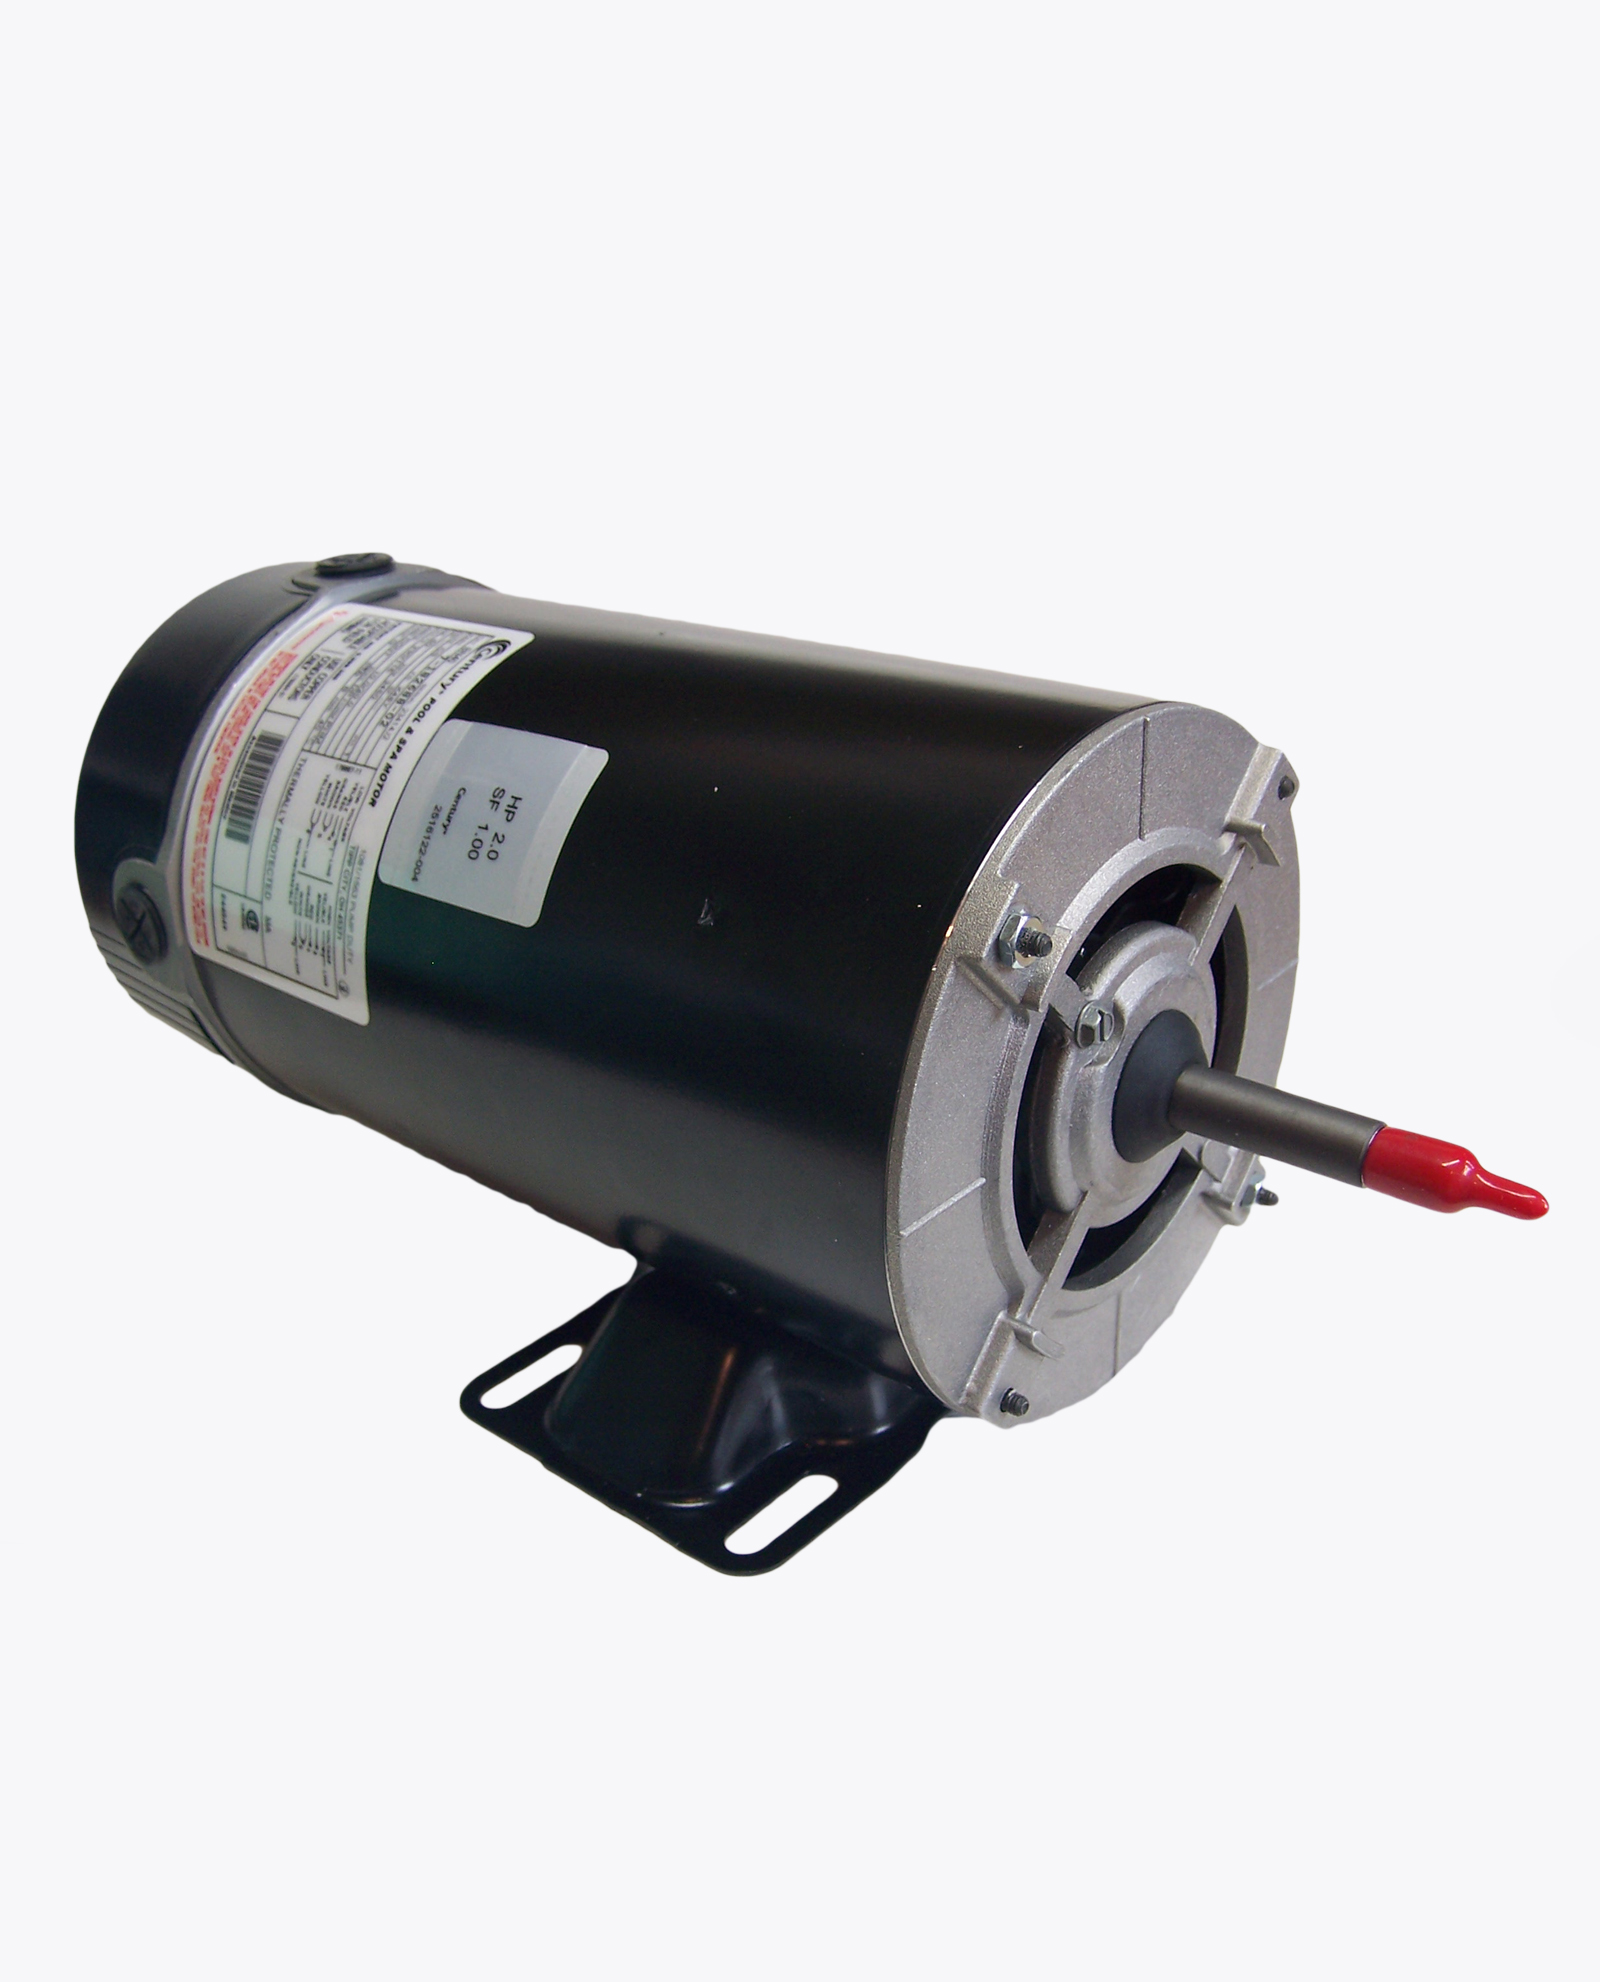 2 Hp Motor 115 230volt 1 Speed Hot Tub Spa Motor